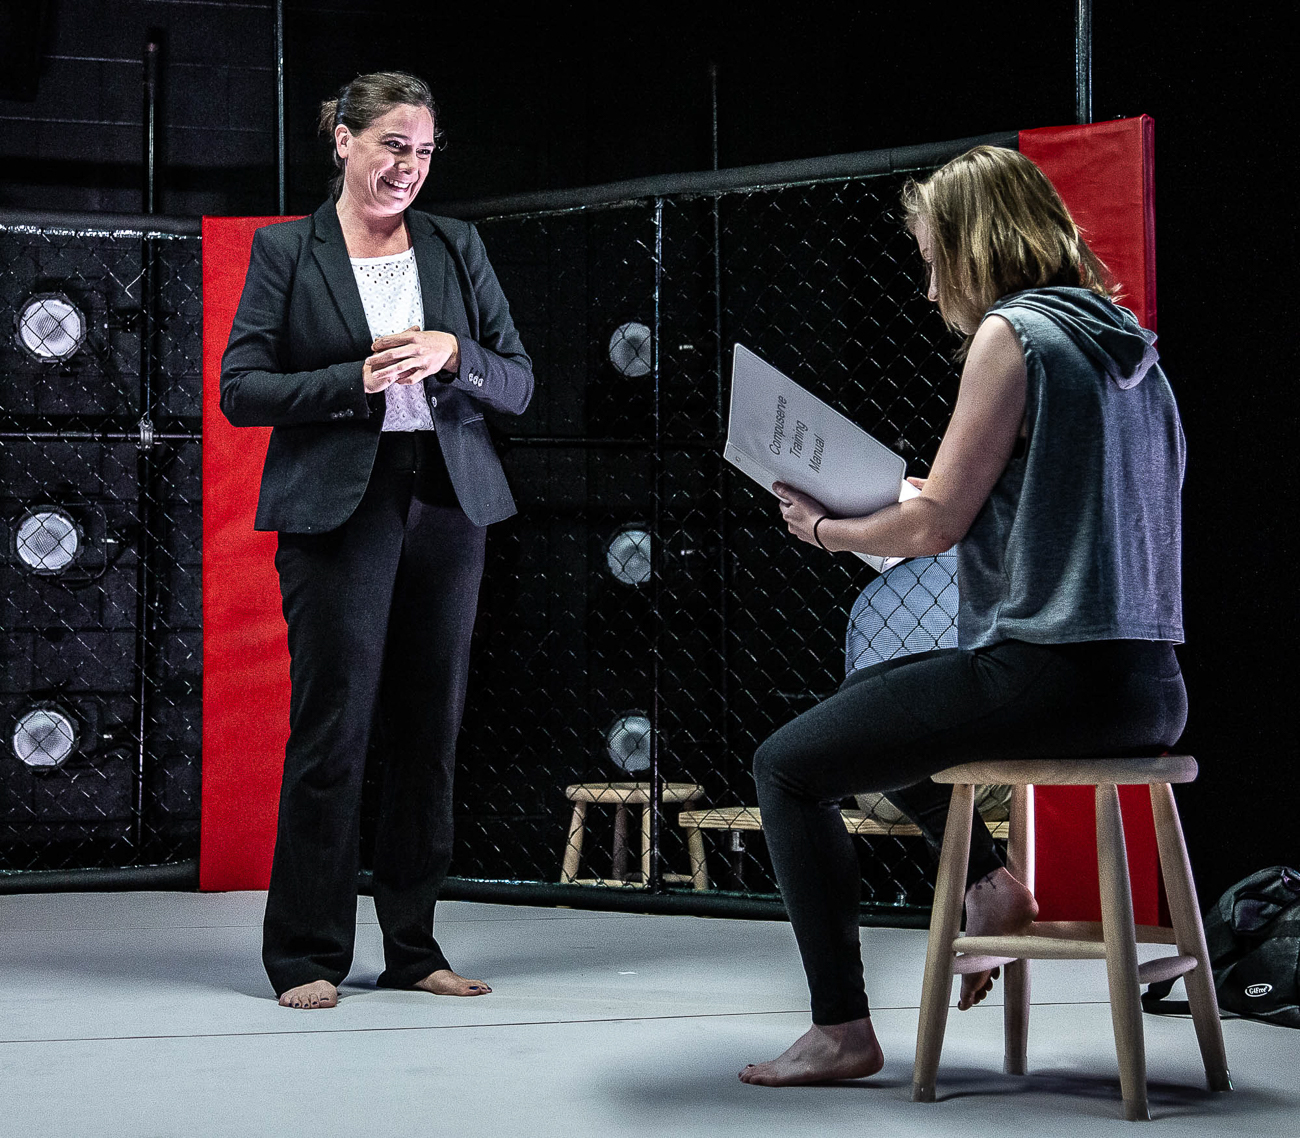 Tess Talbot and Jennifer Joplin / Girl in the Red Corner by Stephen Spotswood plays every Wednesday through Sunday from July 26 to August 17 at Know Theatre in Over-the-Rhine. ADDRESS: 1120 Jackson Street (45202) / Image: Daniel Winters Photography // Published: 7.31.19